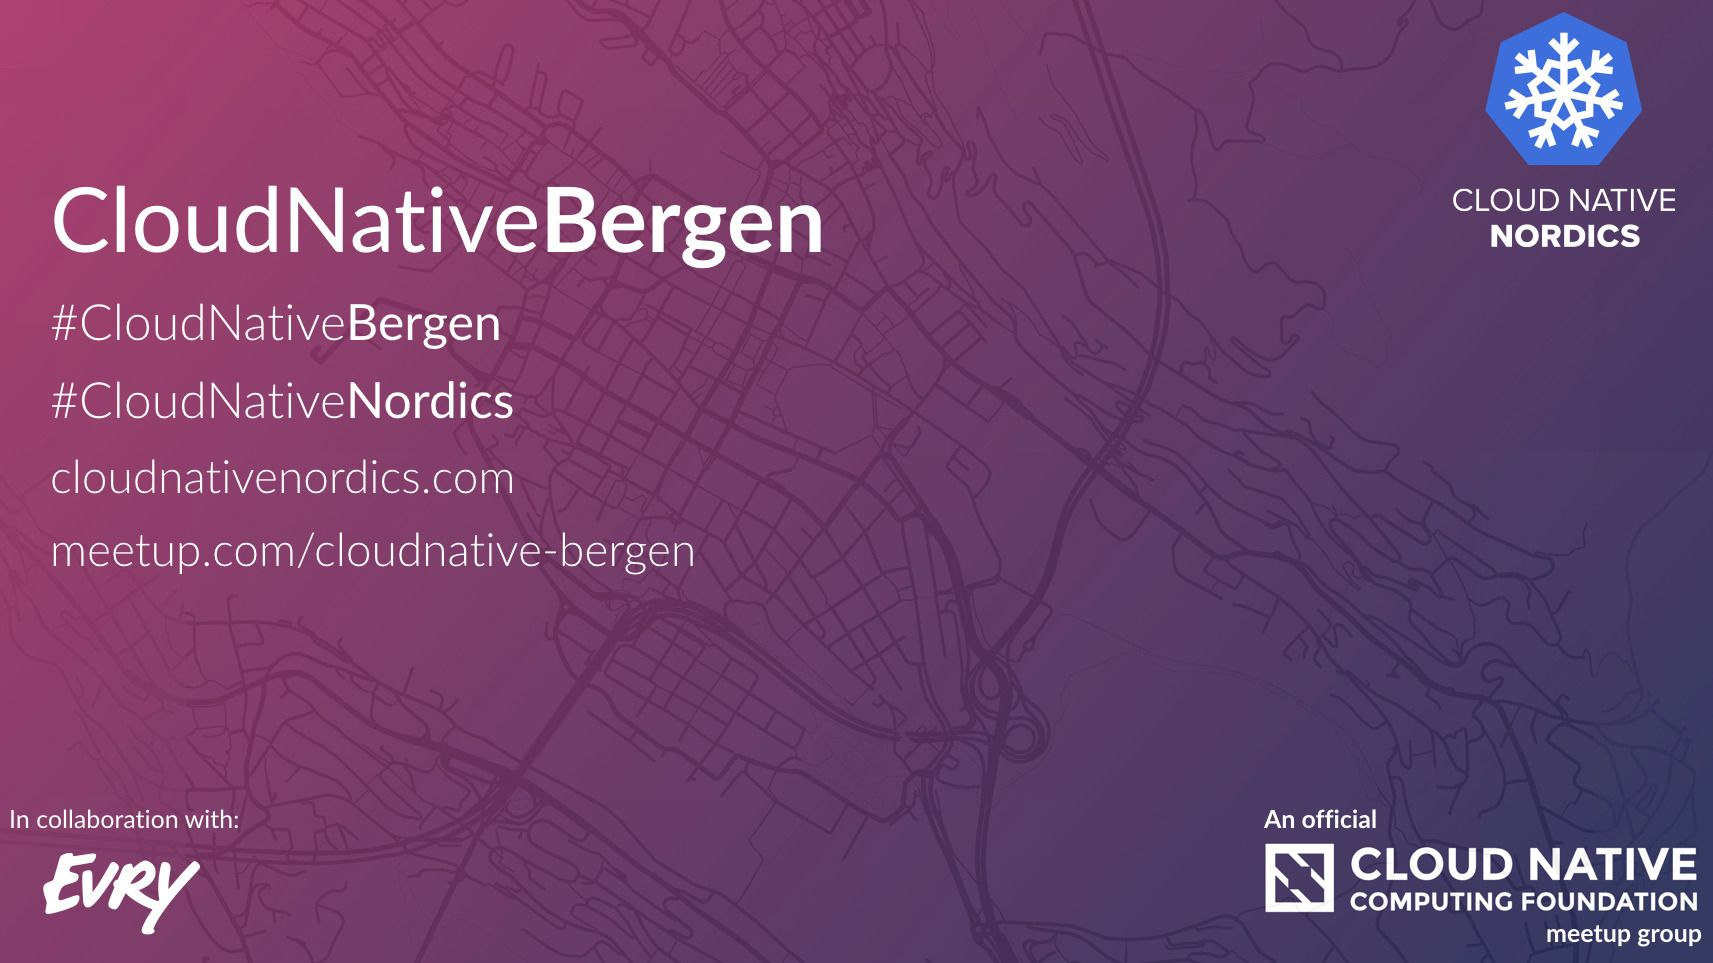 DevOps and Cloud Native Bergen